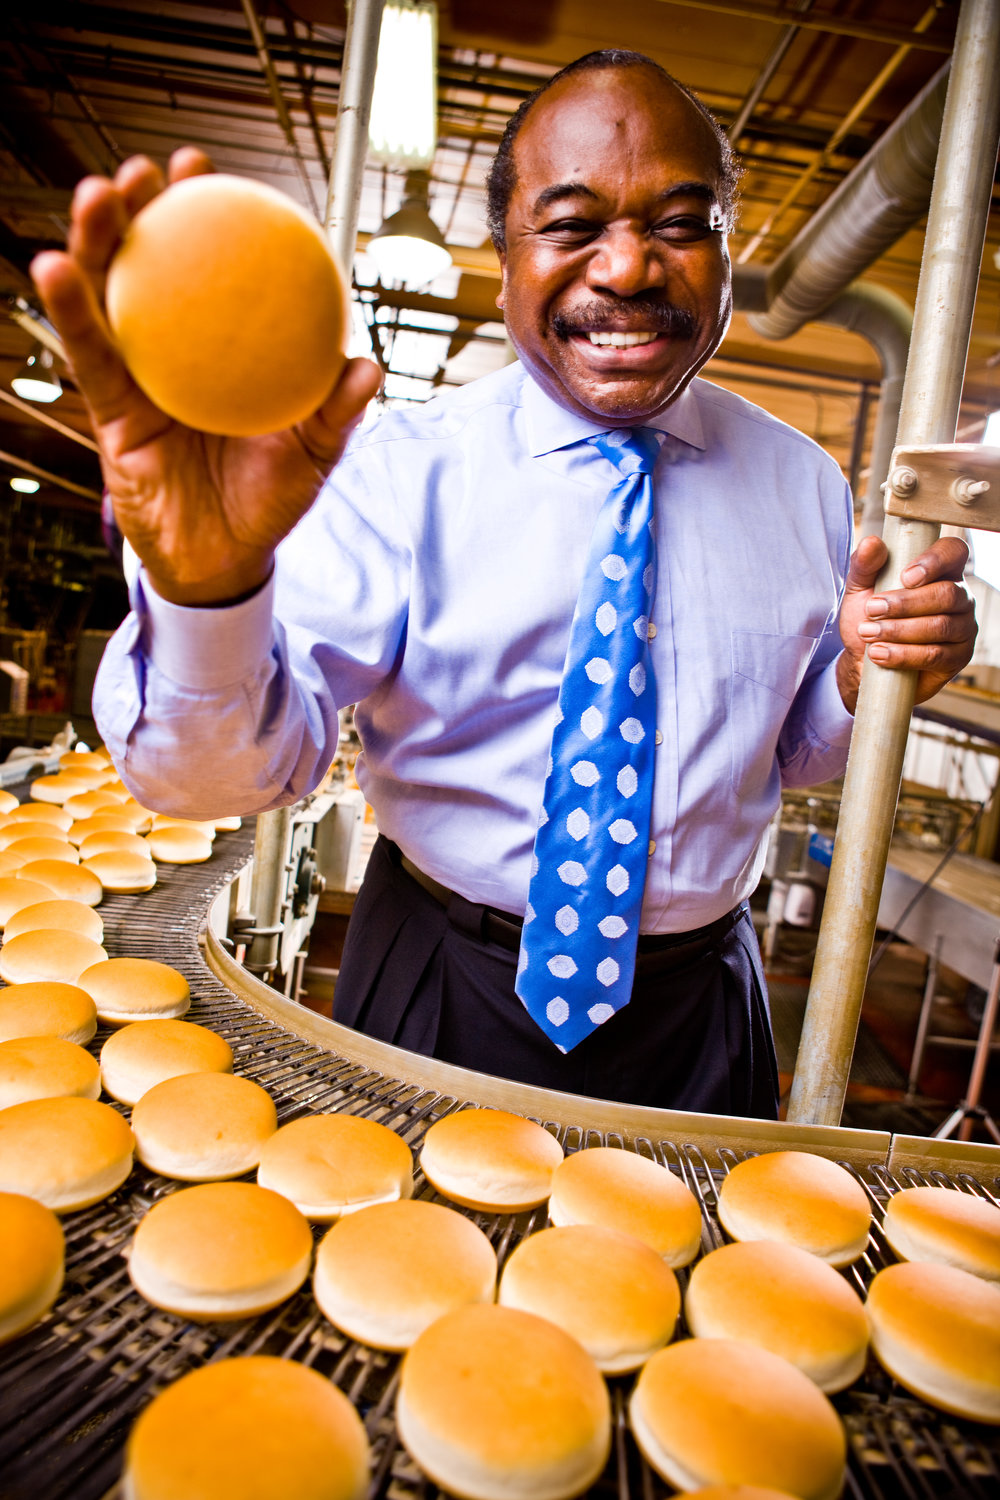 Portrait of Alum Tilman Brown owner of New Horizons Baking Co. in Norwalk, OH